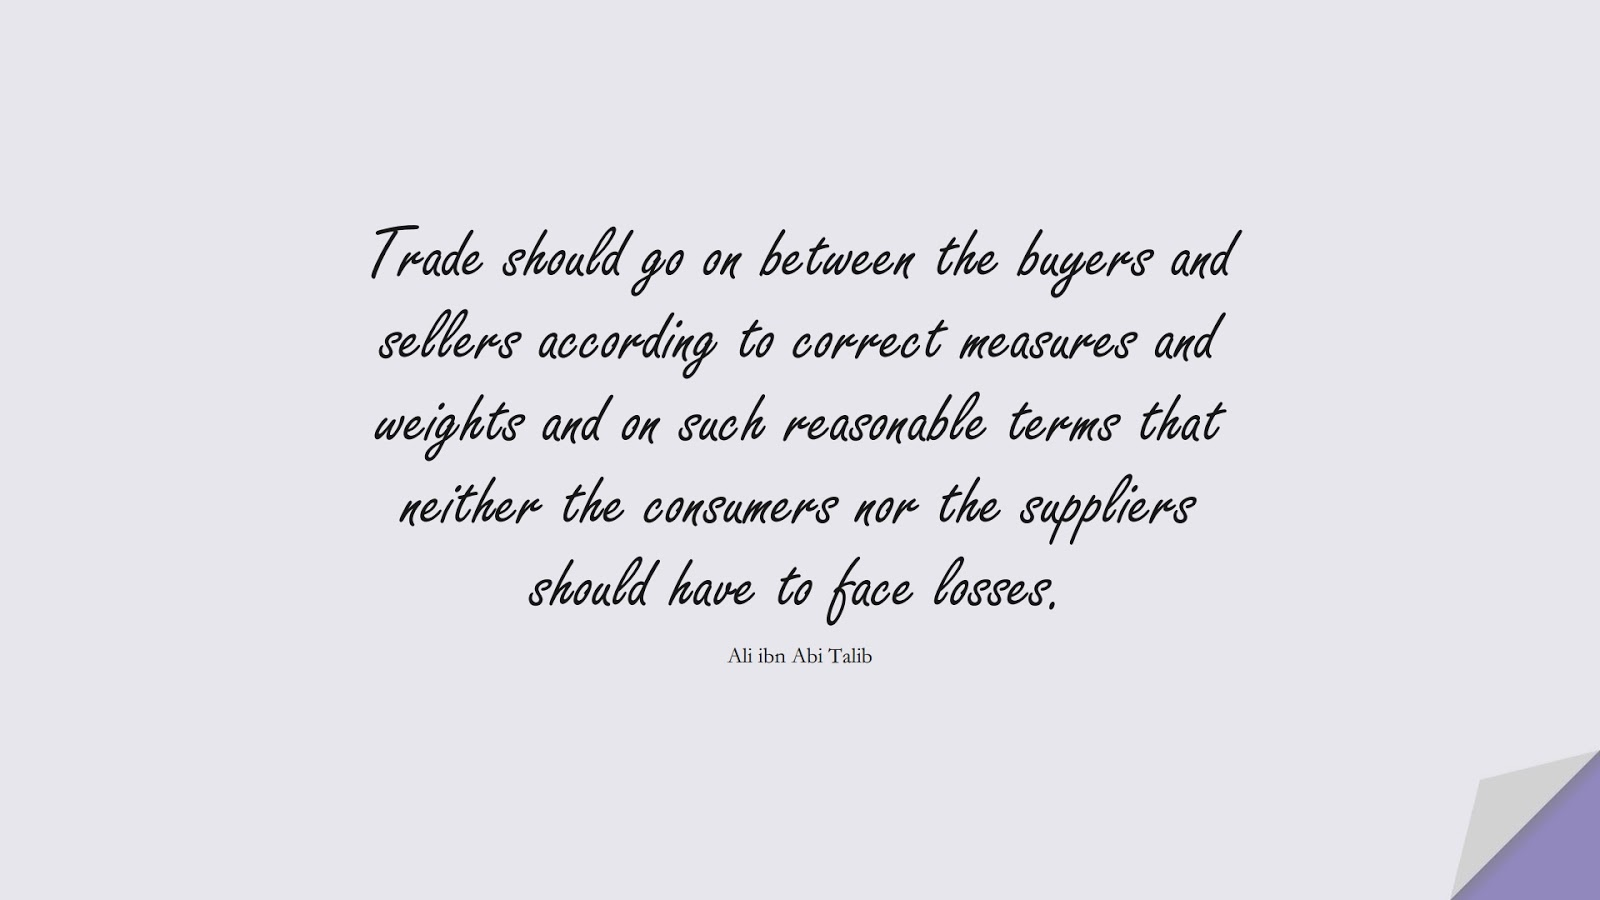 Trade should go on between the buyers and sellers according to correct measures and weights and on such reasonable terms that neither the consumers nor the suppliers should have to face losses. (Ali ibn Abi Talib);  #AliQuotes